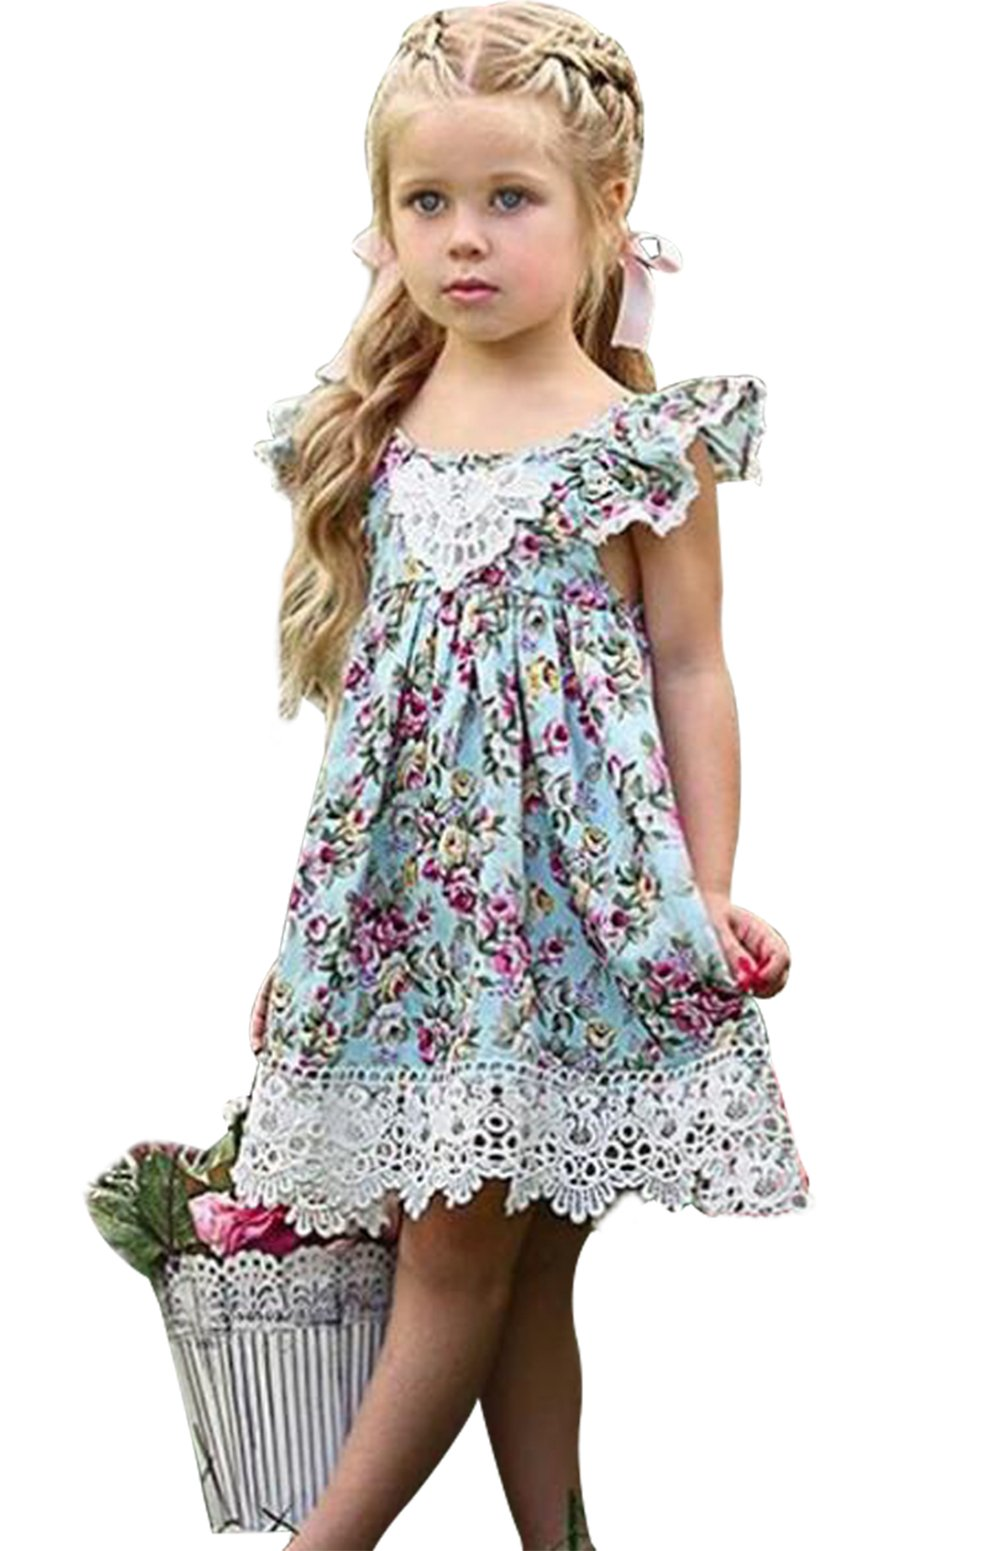 LOTUCY Kids Baby Girls Floral Lace Hem Ruffle Summer Party Beach Princess Dress Size 3-4 Years/Tag110 (Blue)